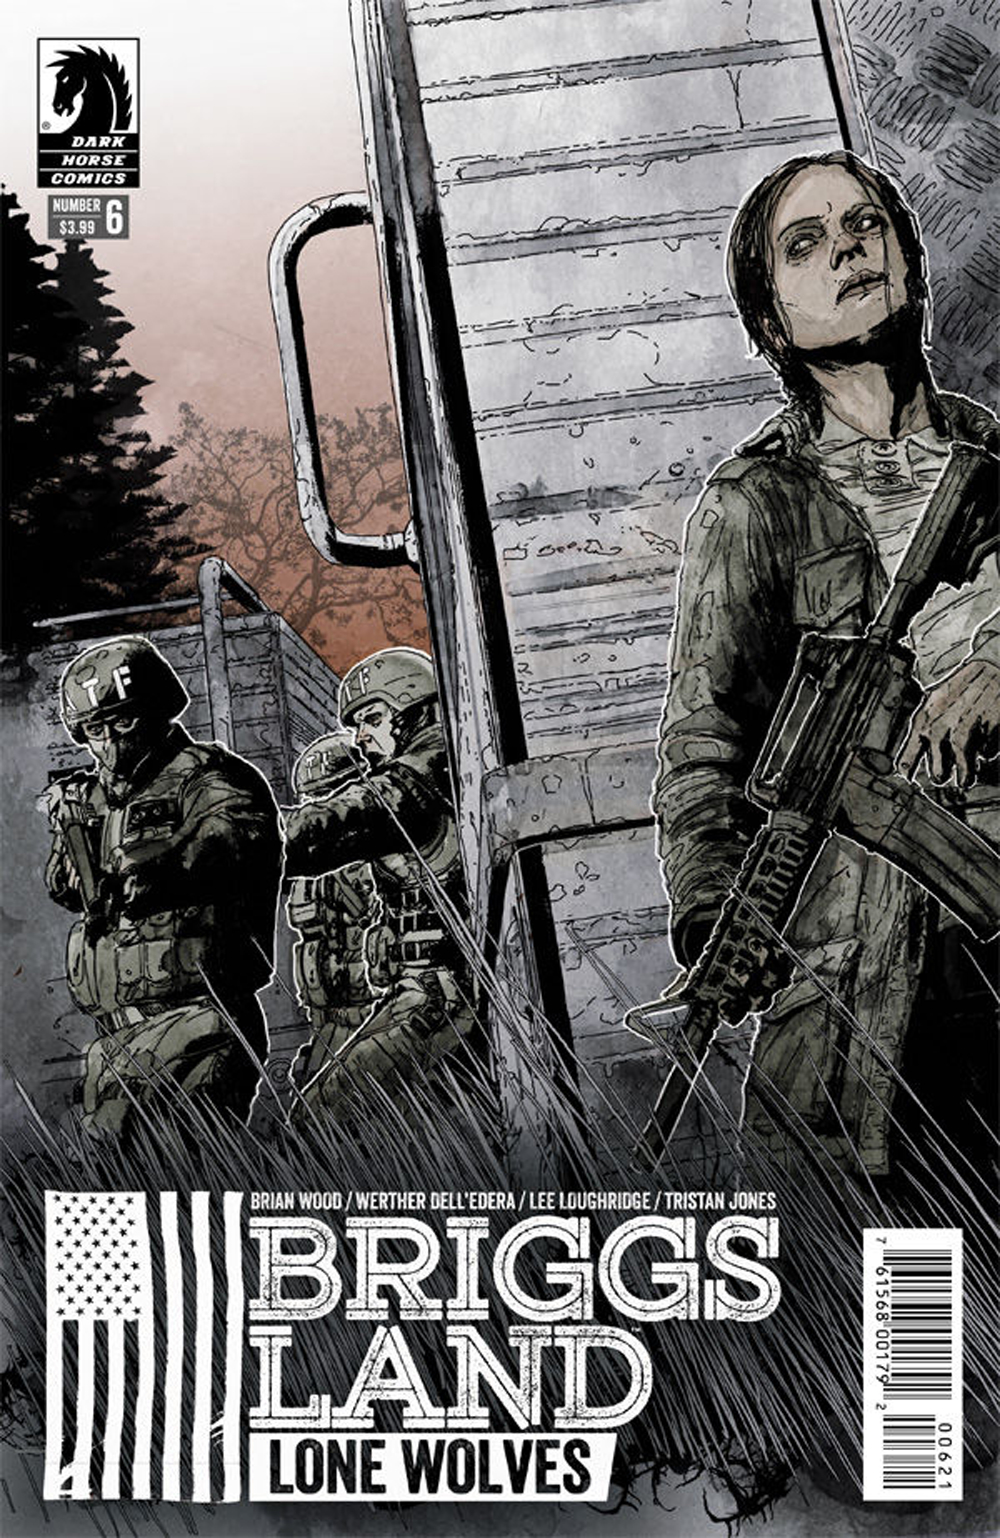 BRIGGS LAND LONE WOLVES #6 (OF 6) VAR